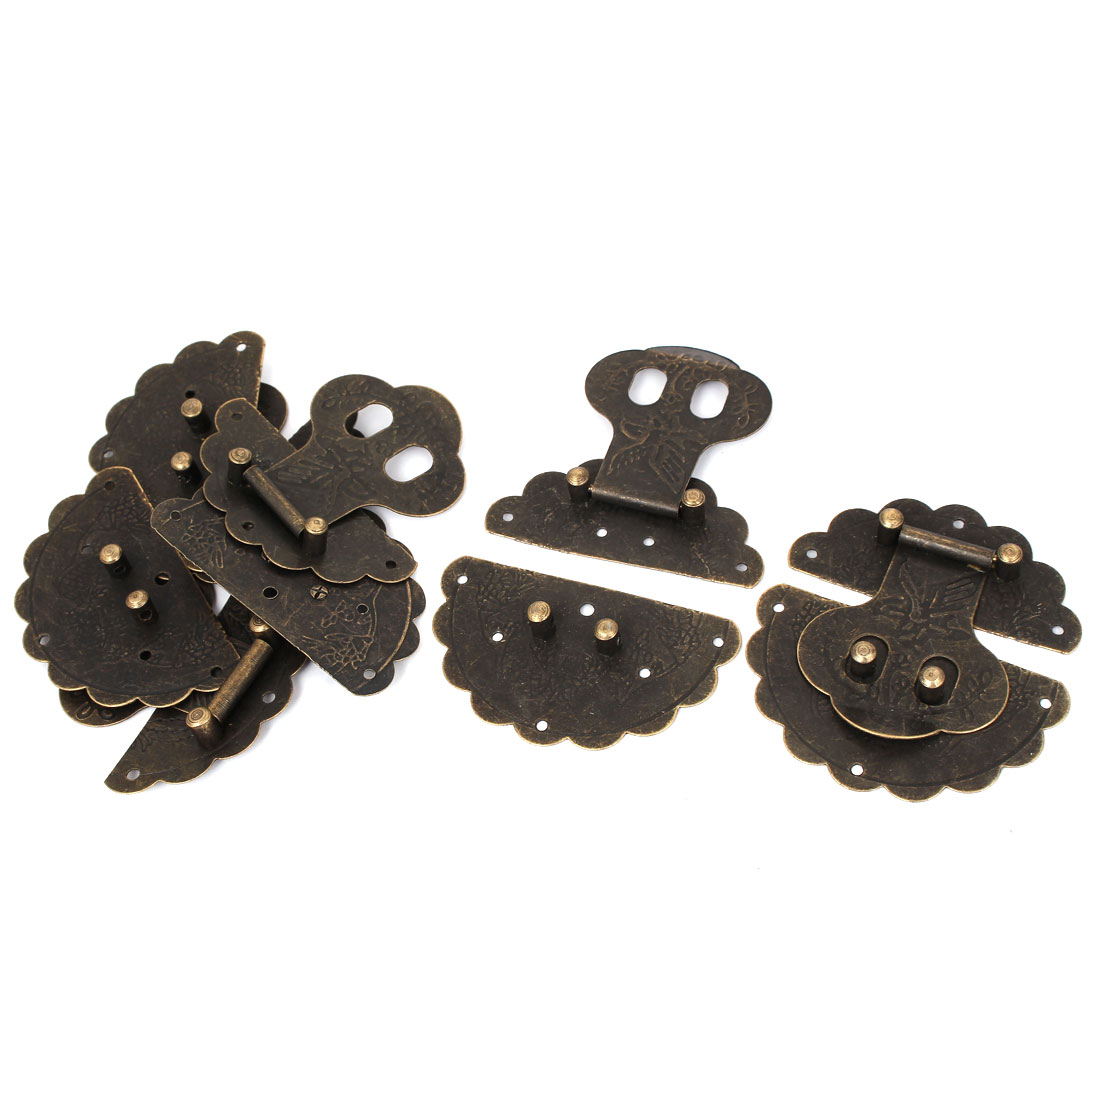 Vintage Style Wooden Case Chest Box 78mm Round Clasp Hasp Latches Bronze Tone 5pcs